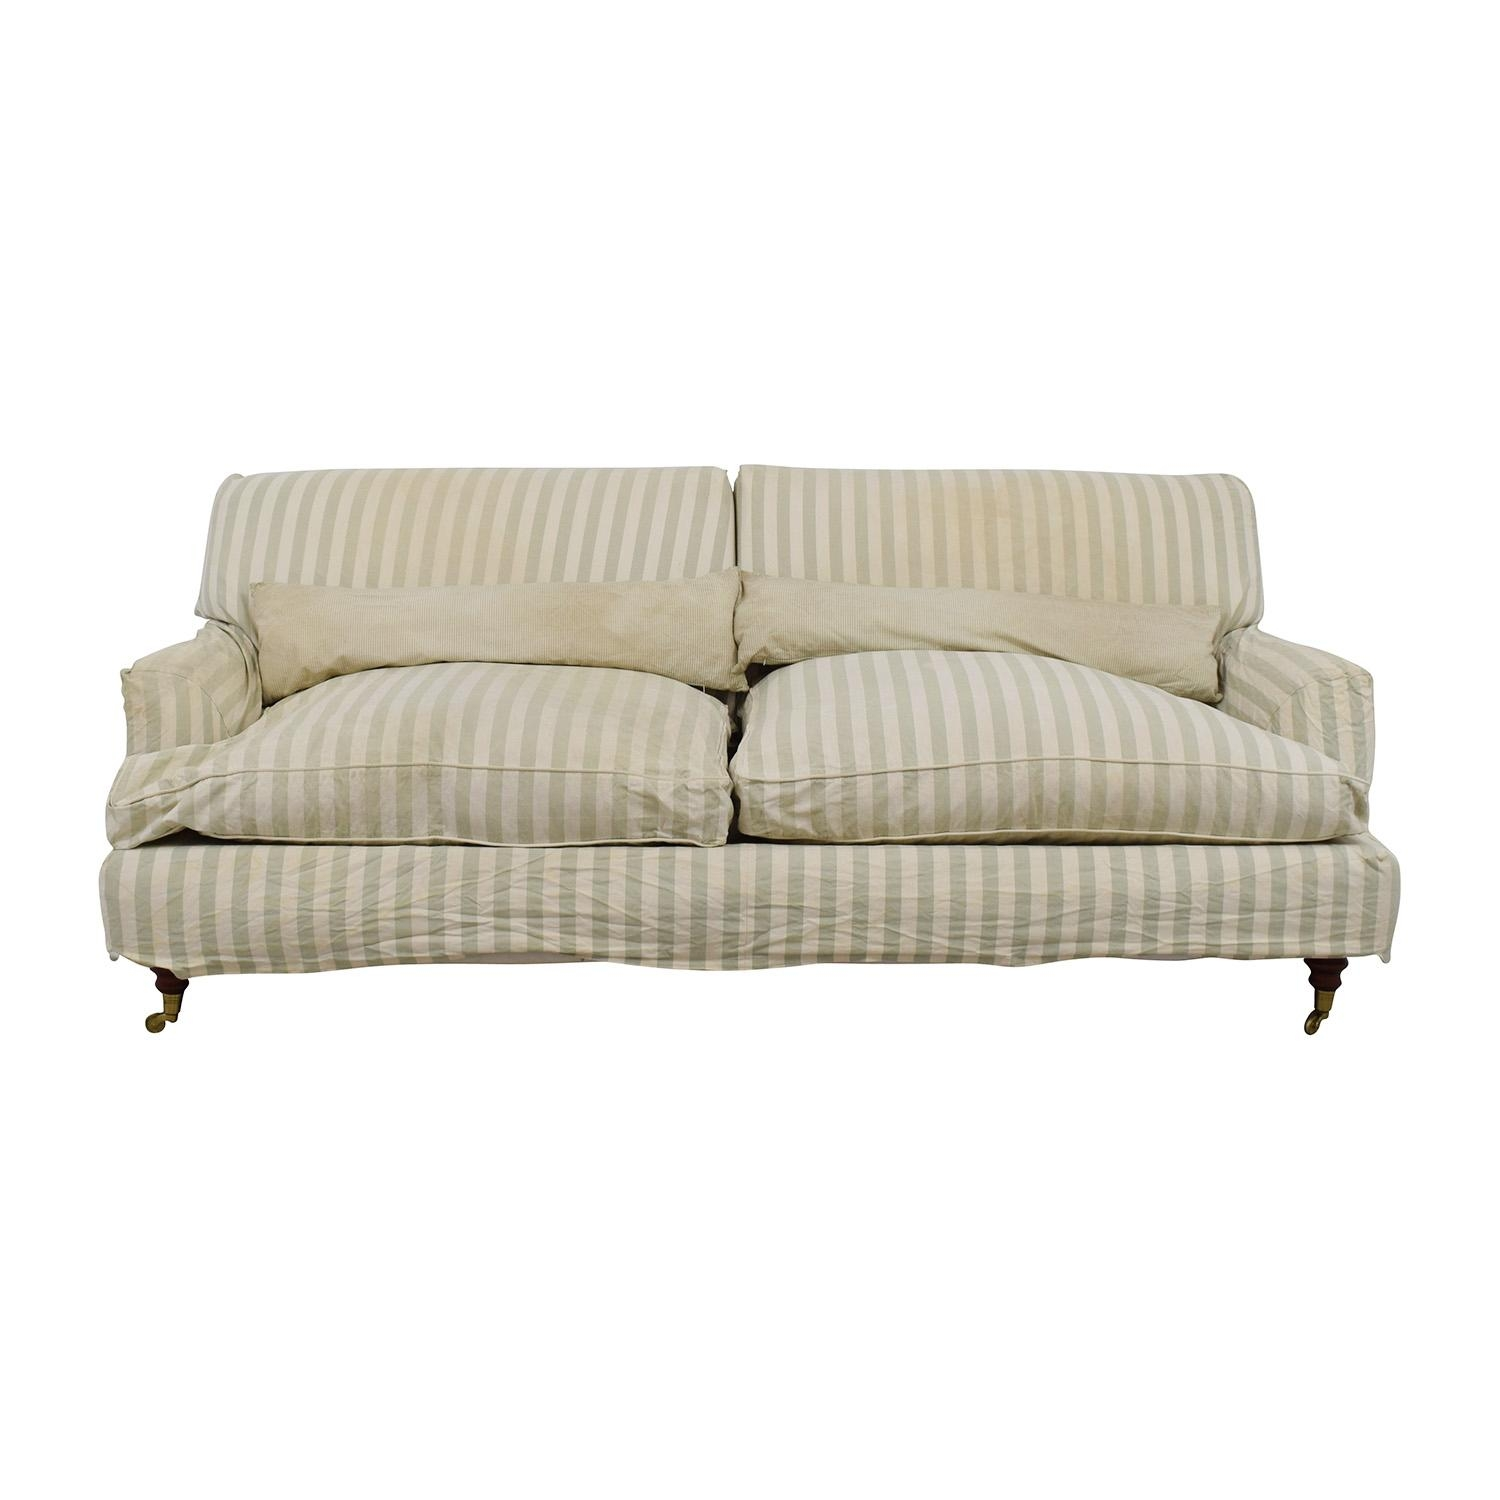 85% Off – Green And White Striped English Roll Arm Sofa / Sofas For Classic English Sofas (Image 2 of 21)